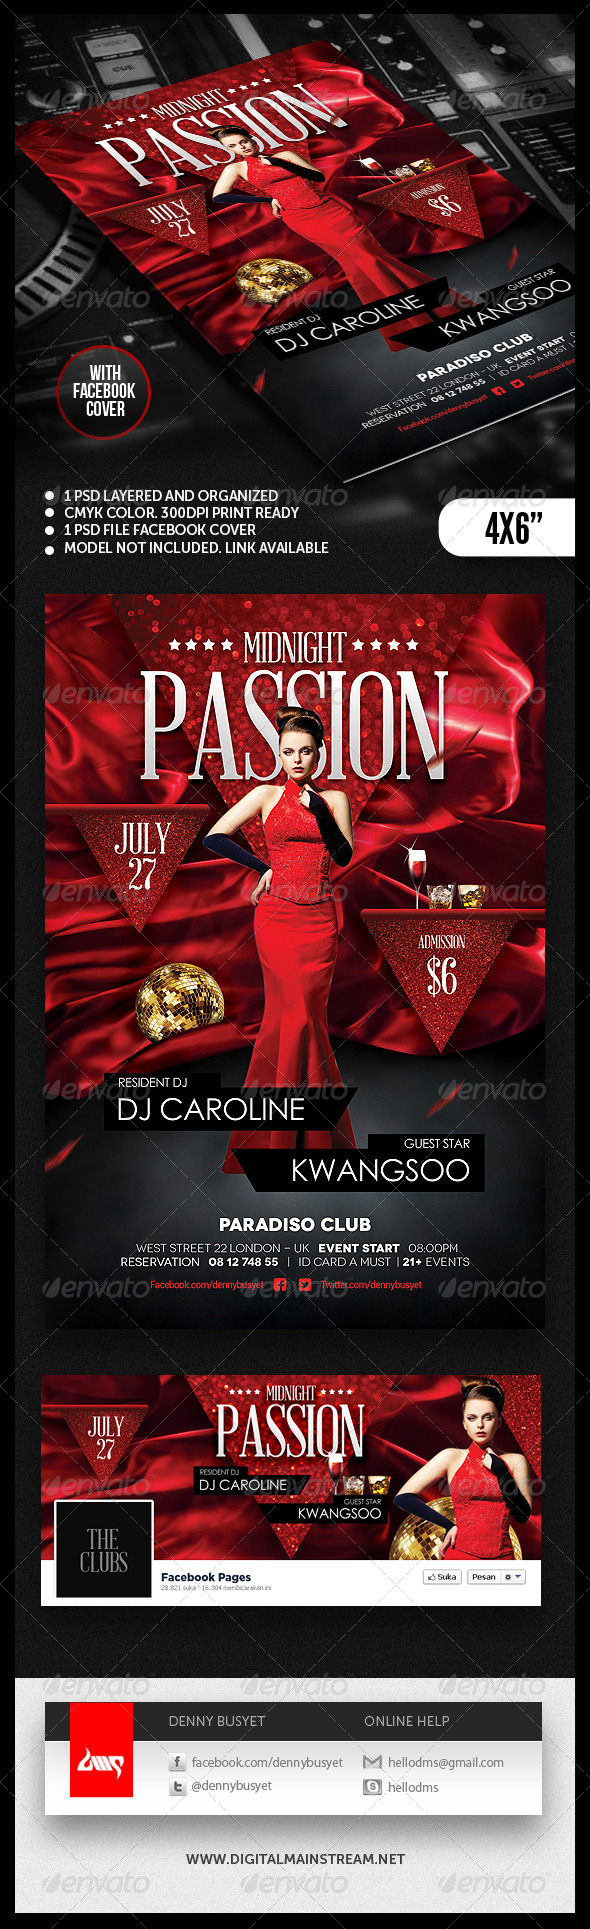 Midnight Passion Nightclub Flyer Template - Clubs & Parties Events